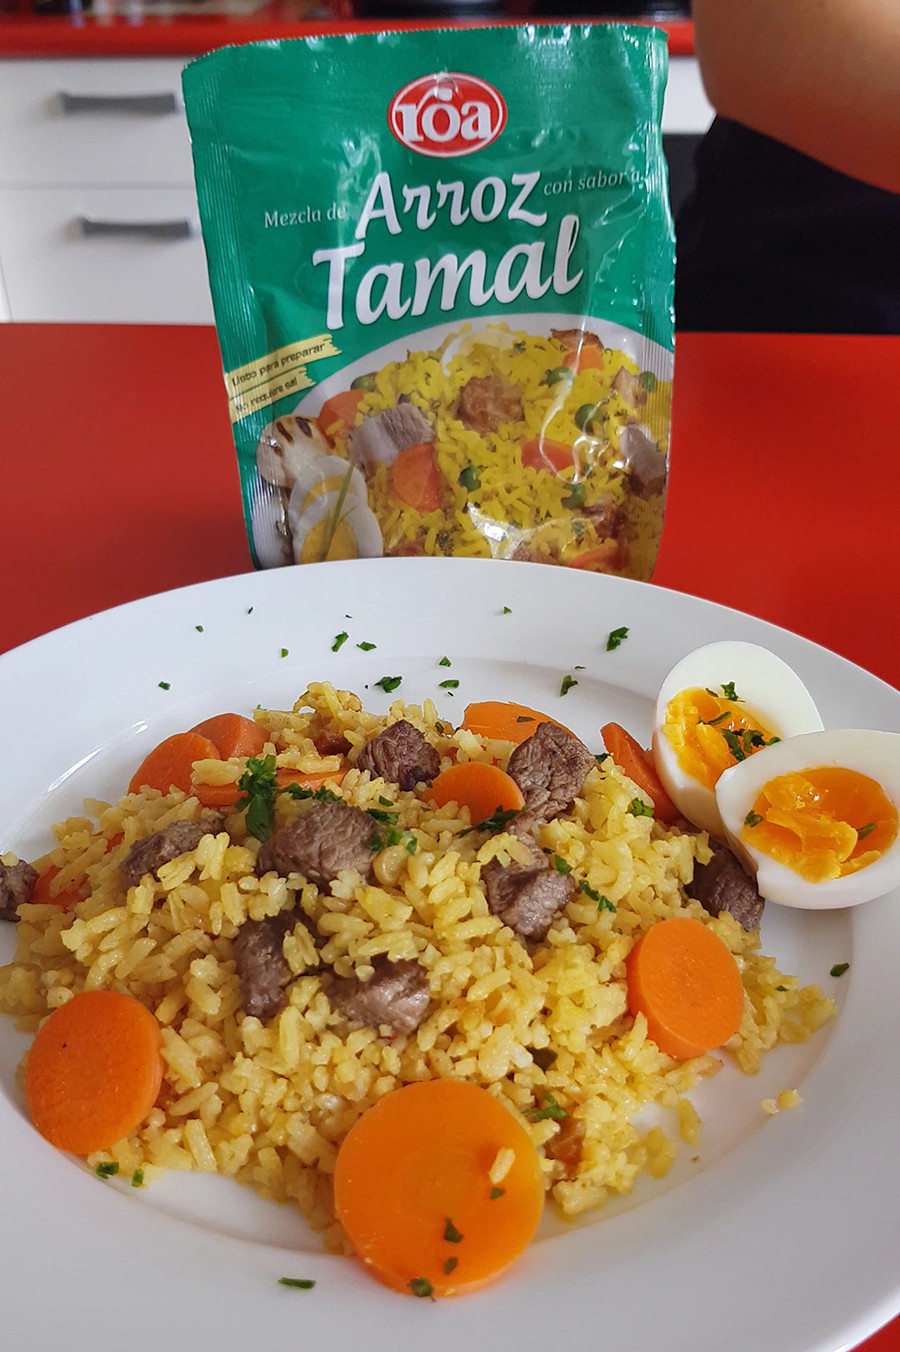 Tamal Rice colombian food in new zealand